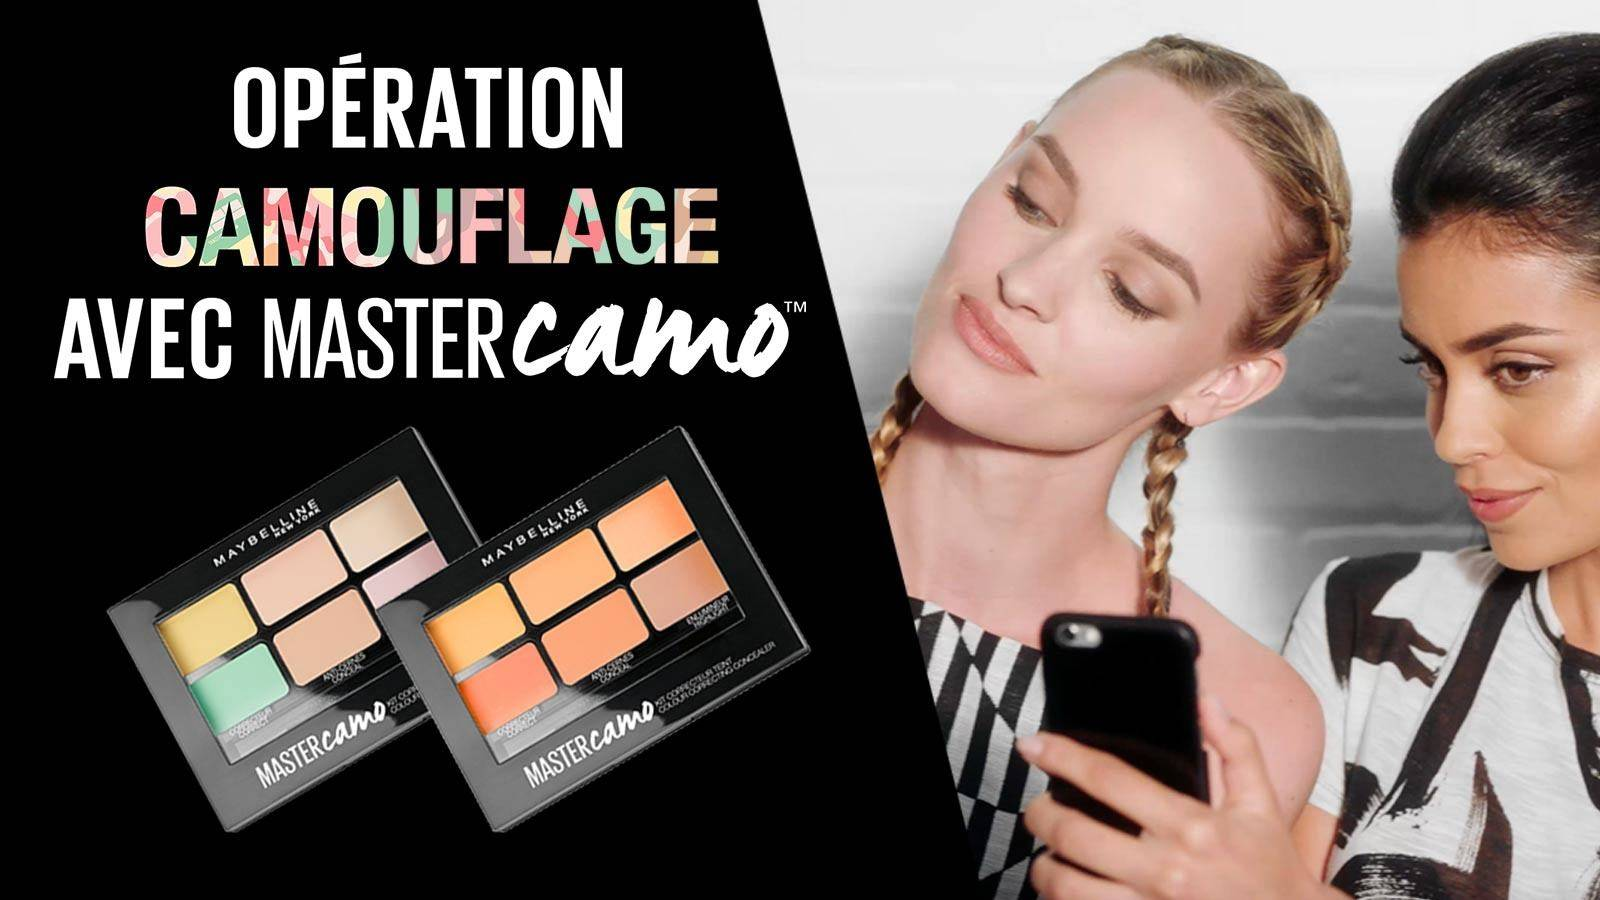 maybelline-master-camo-opération-camouflage-video-16x9